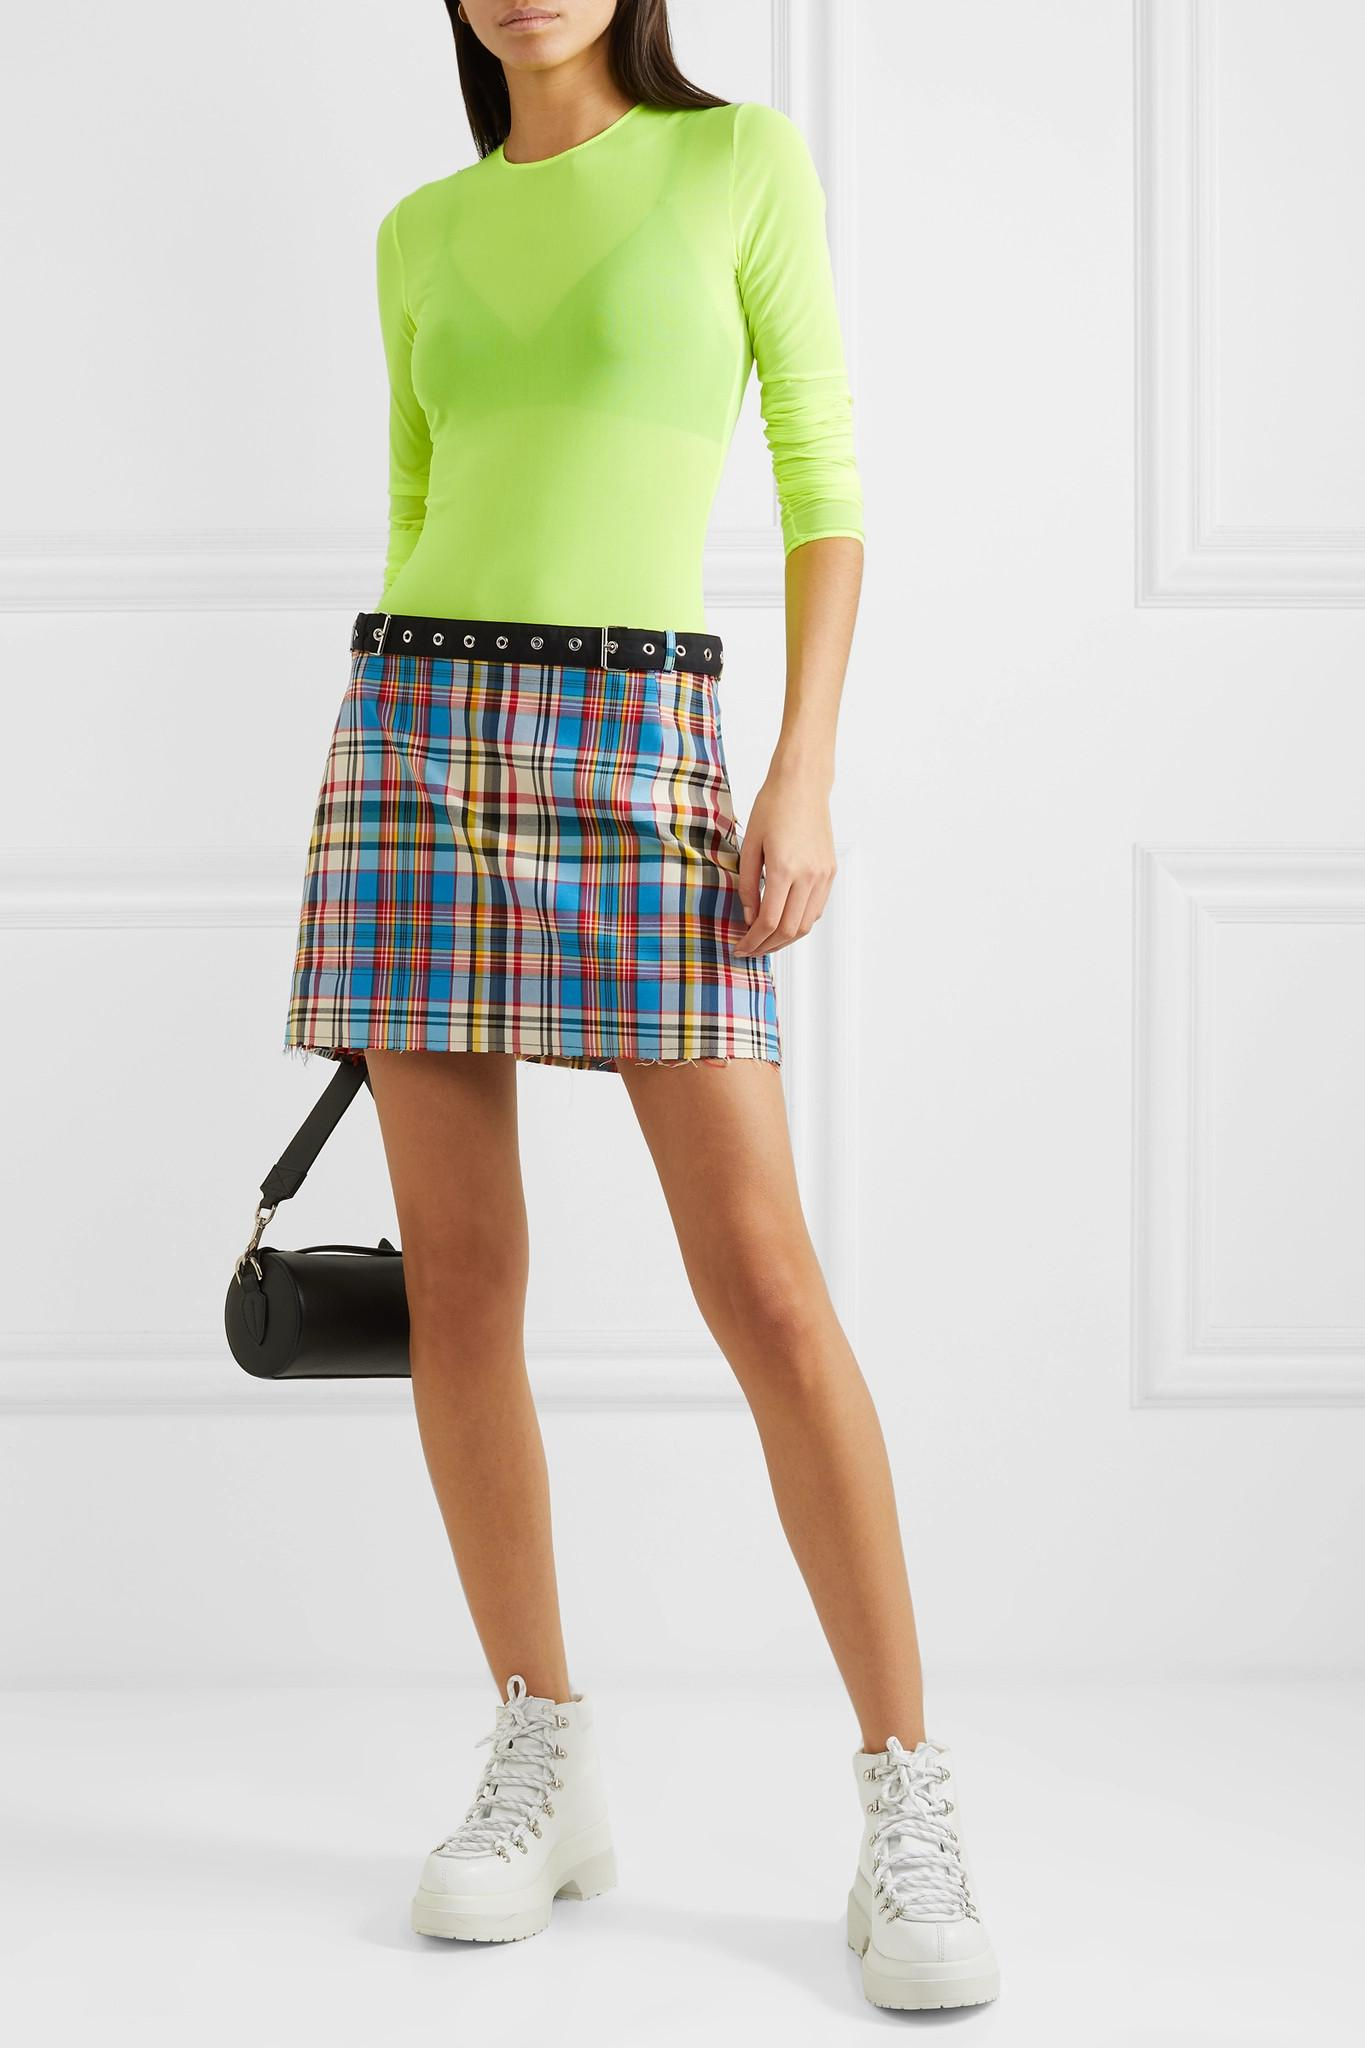 6d8f20cefb Marques'Almeida - Blue Belted Check Mini Skirt - Lyst. View fullscreen